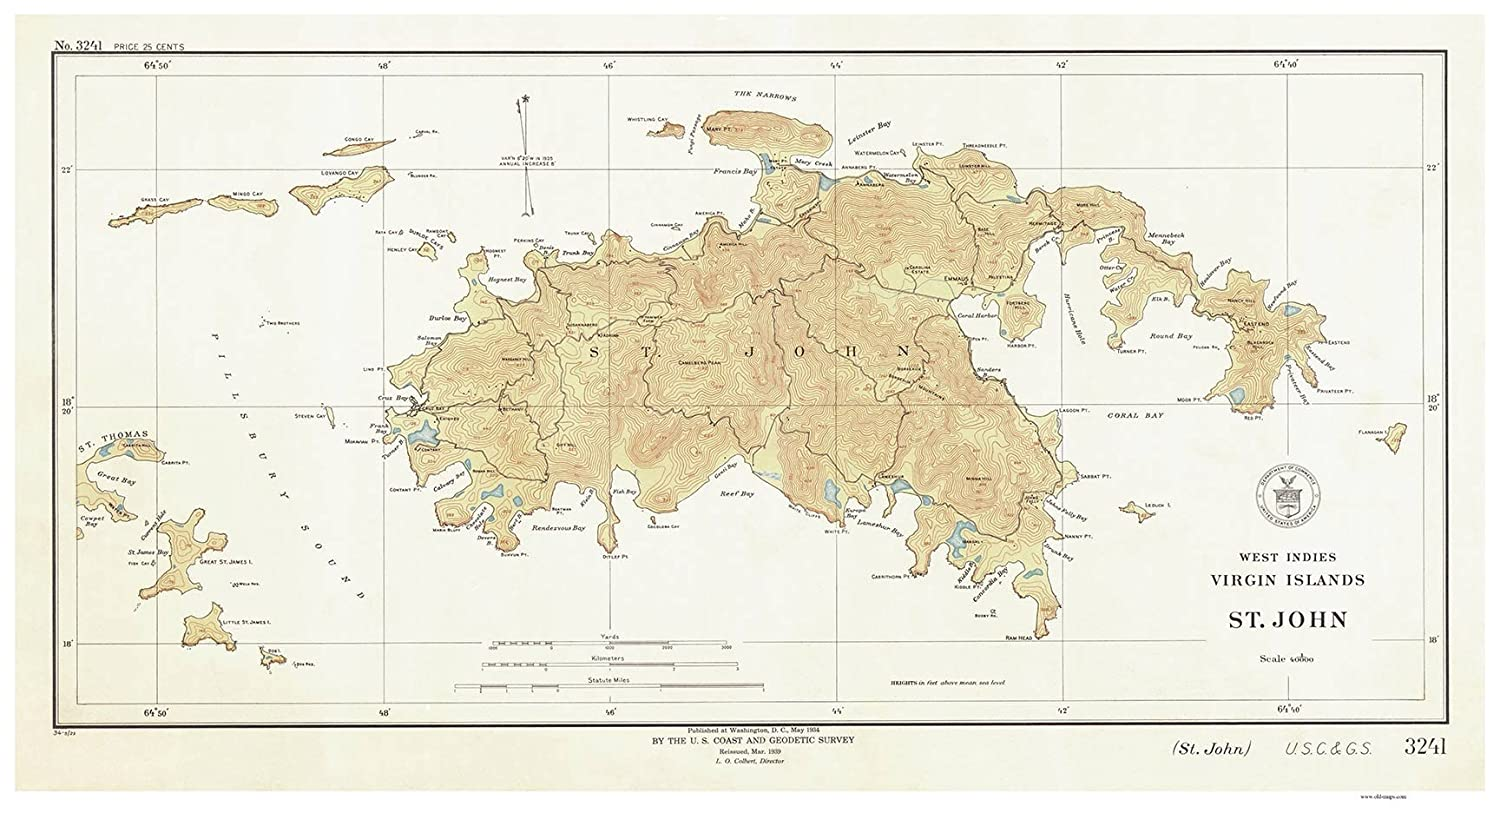 Amazon.com: Saint John - 1934 Virgin Islands Topographical ...